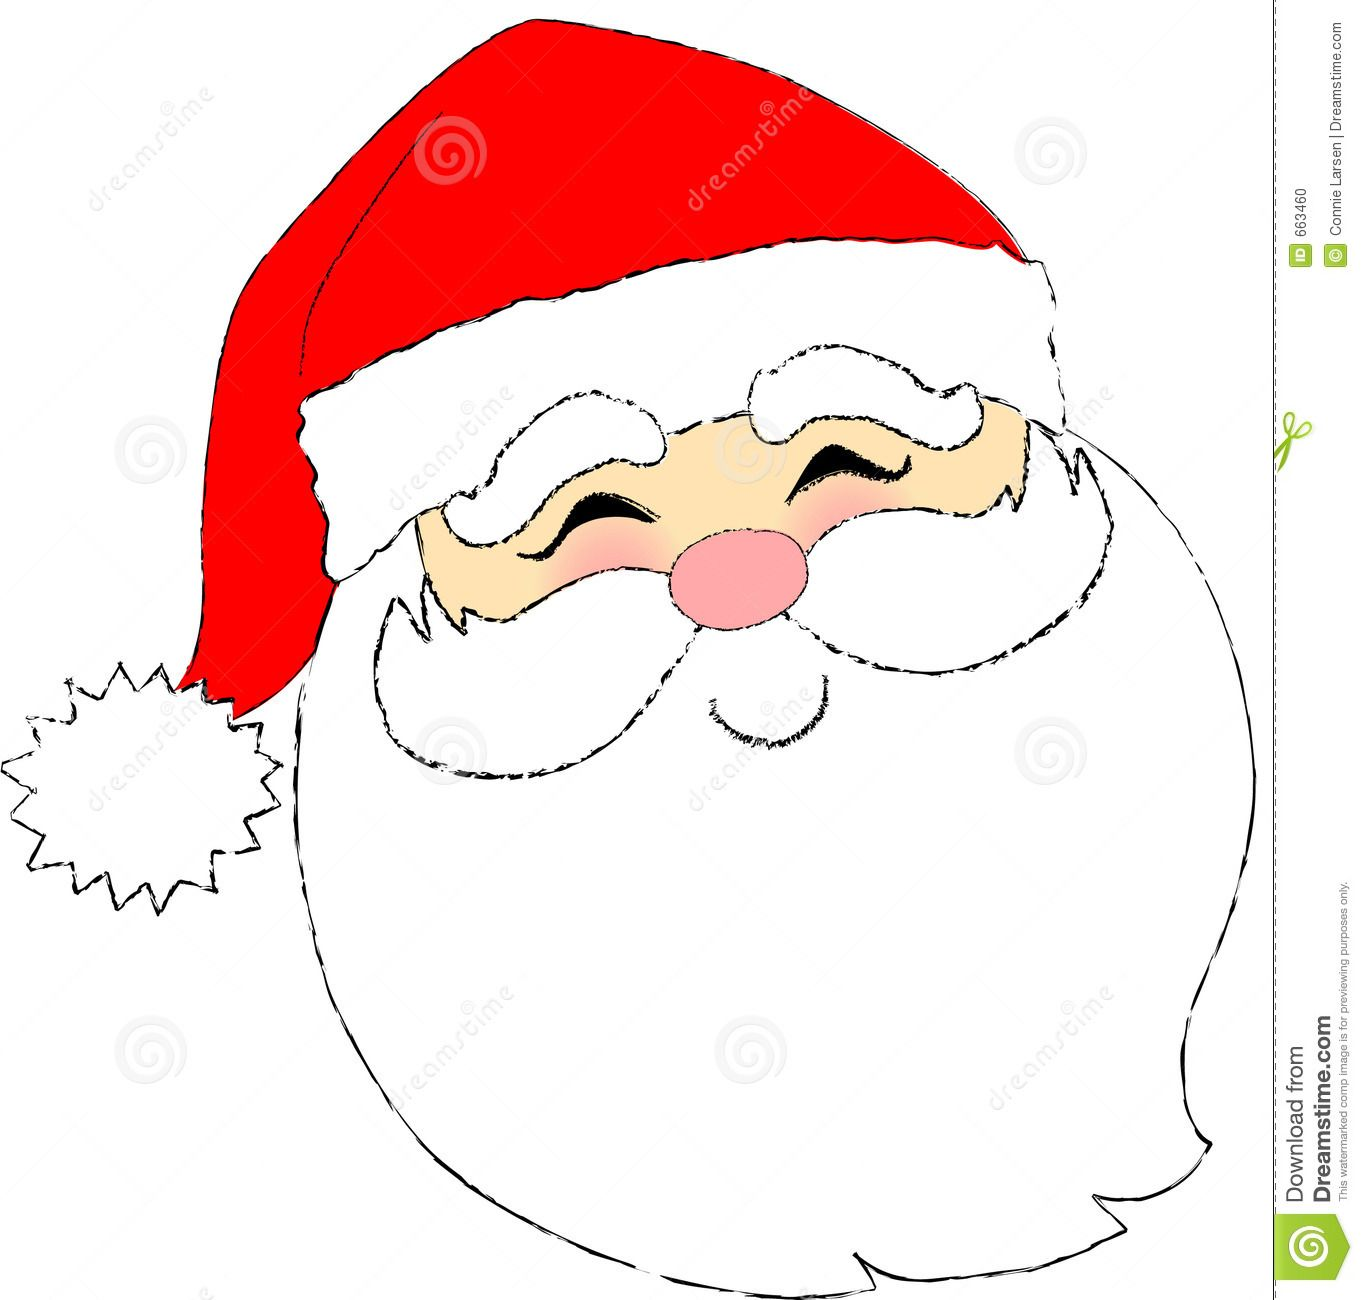 Santa claus face clipart picture free stock Cartoon Santa Claus Face | Printables | Santa face, Santa ... picture free stock